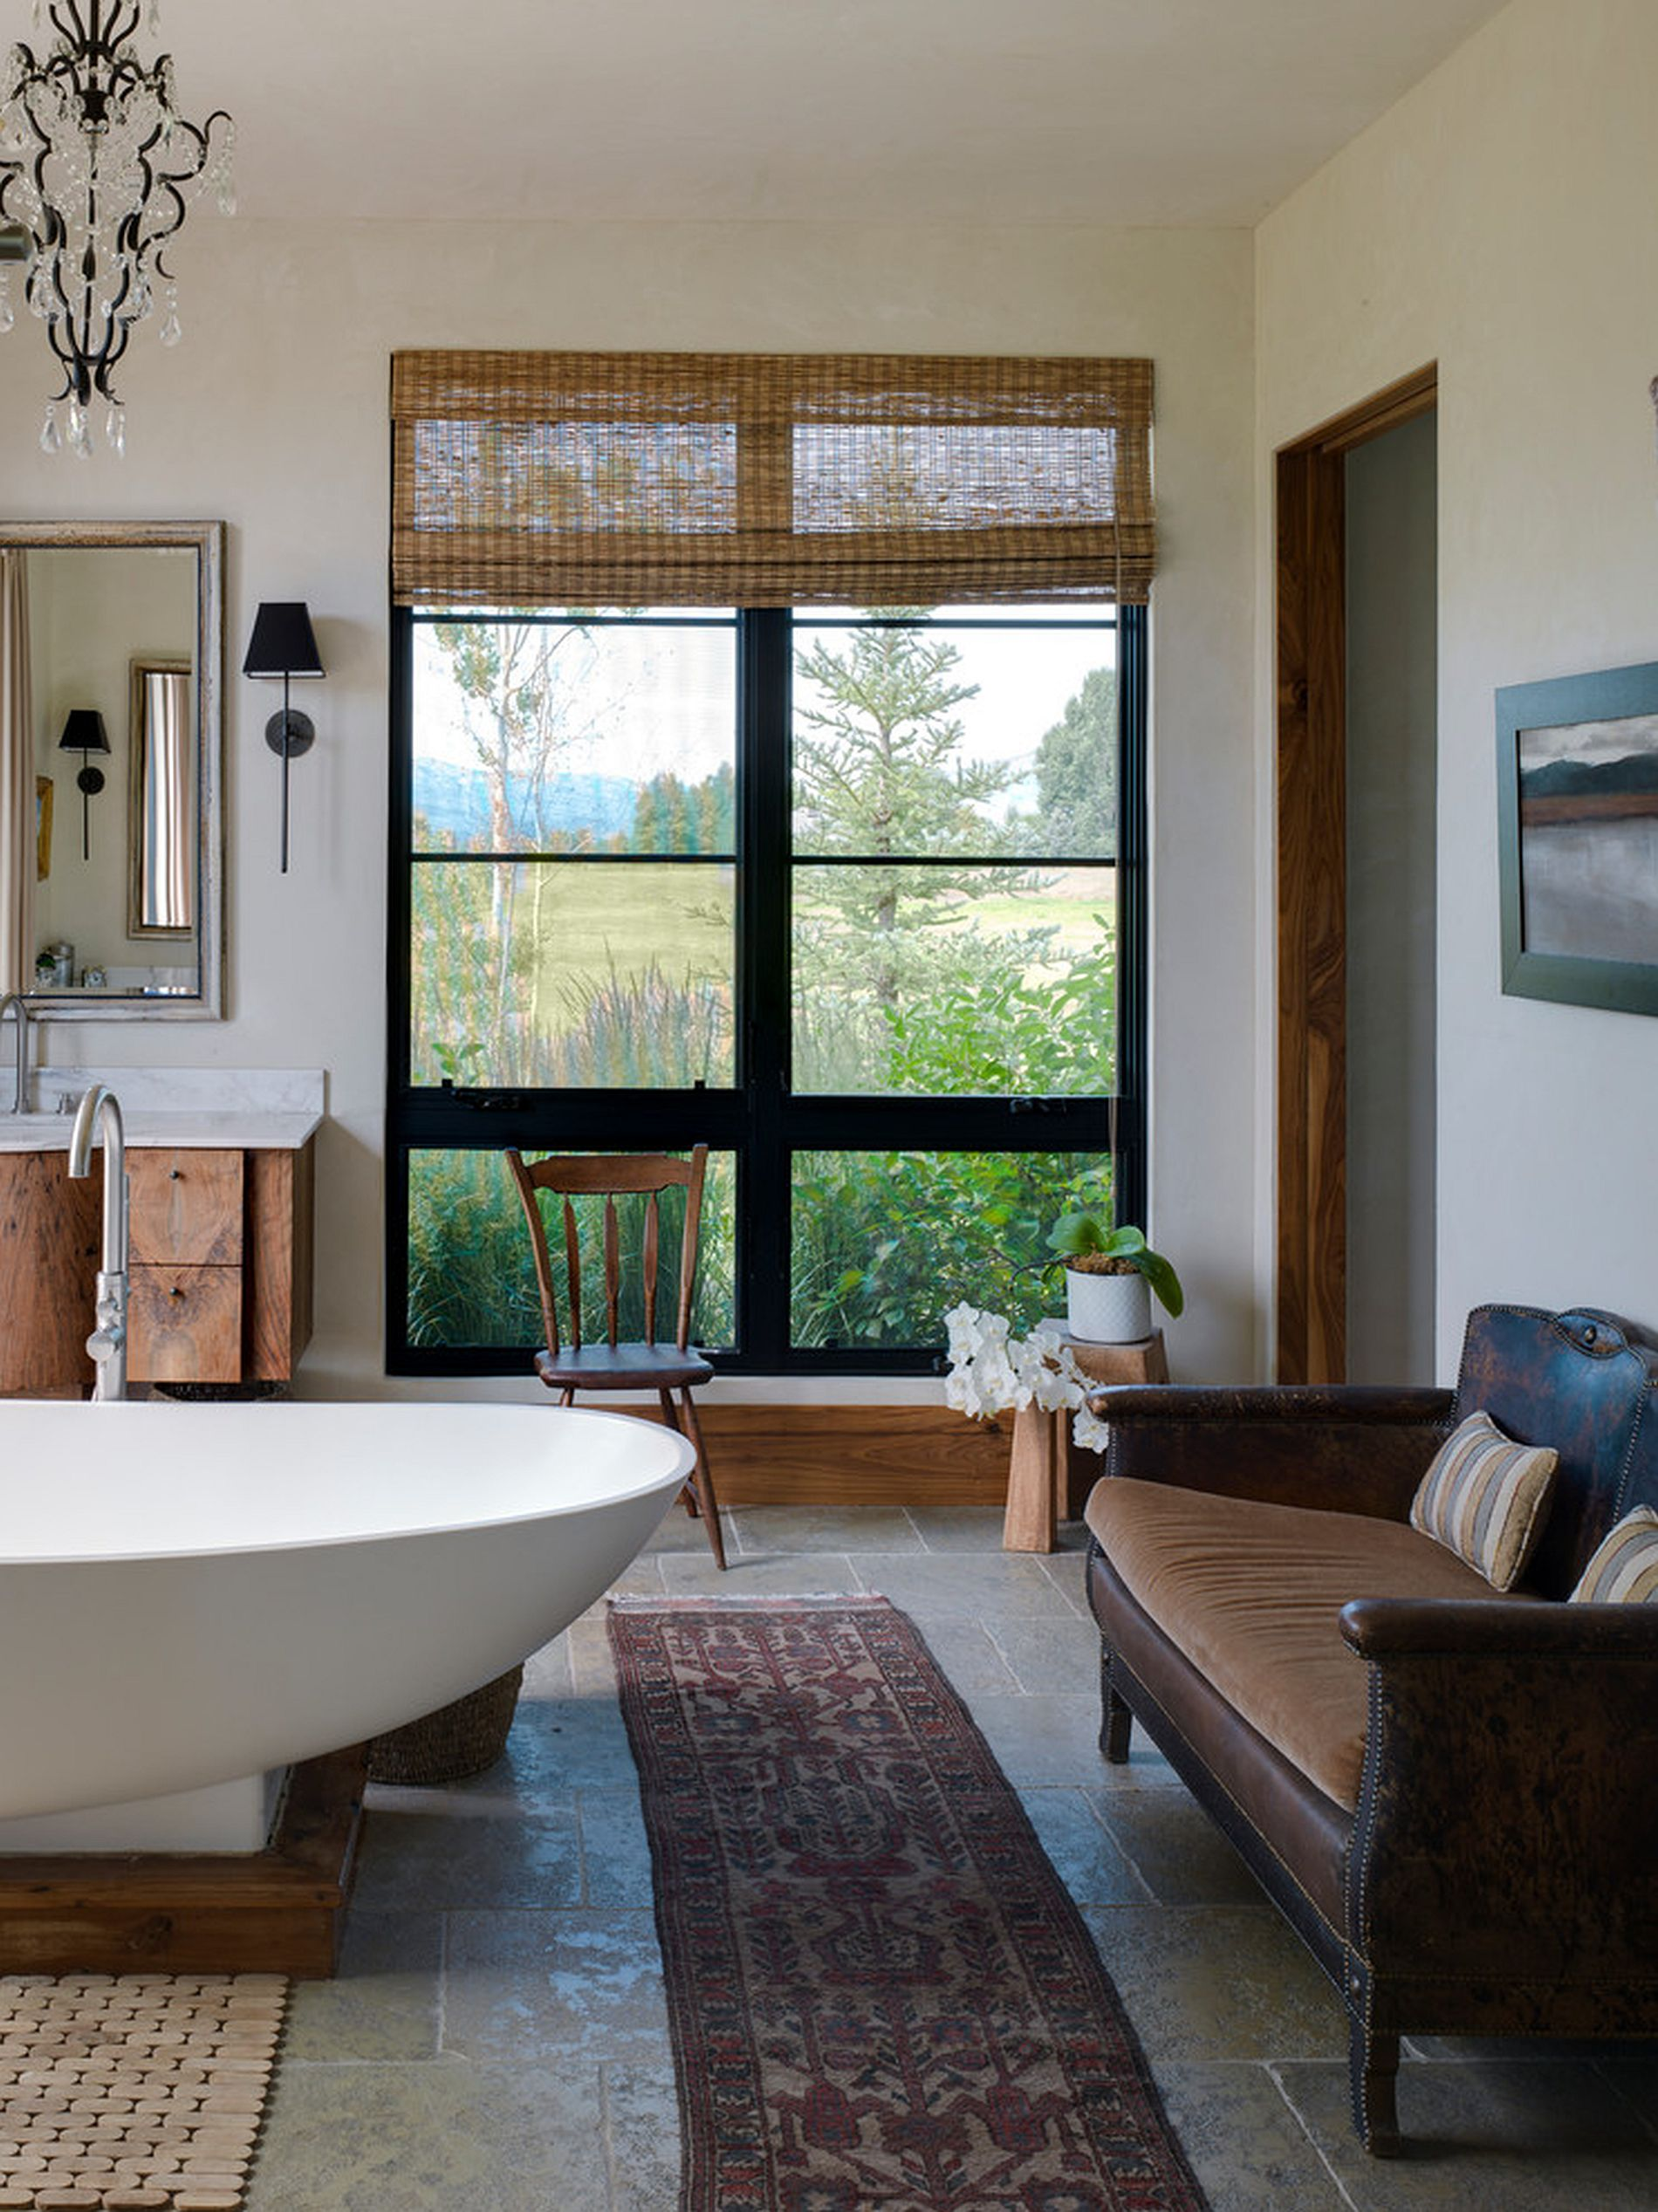 Seasonal Style Hot Bathroom Trends to Try Out This Summer